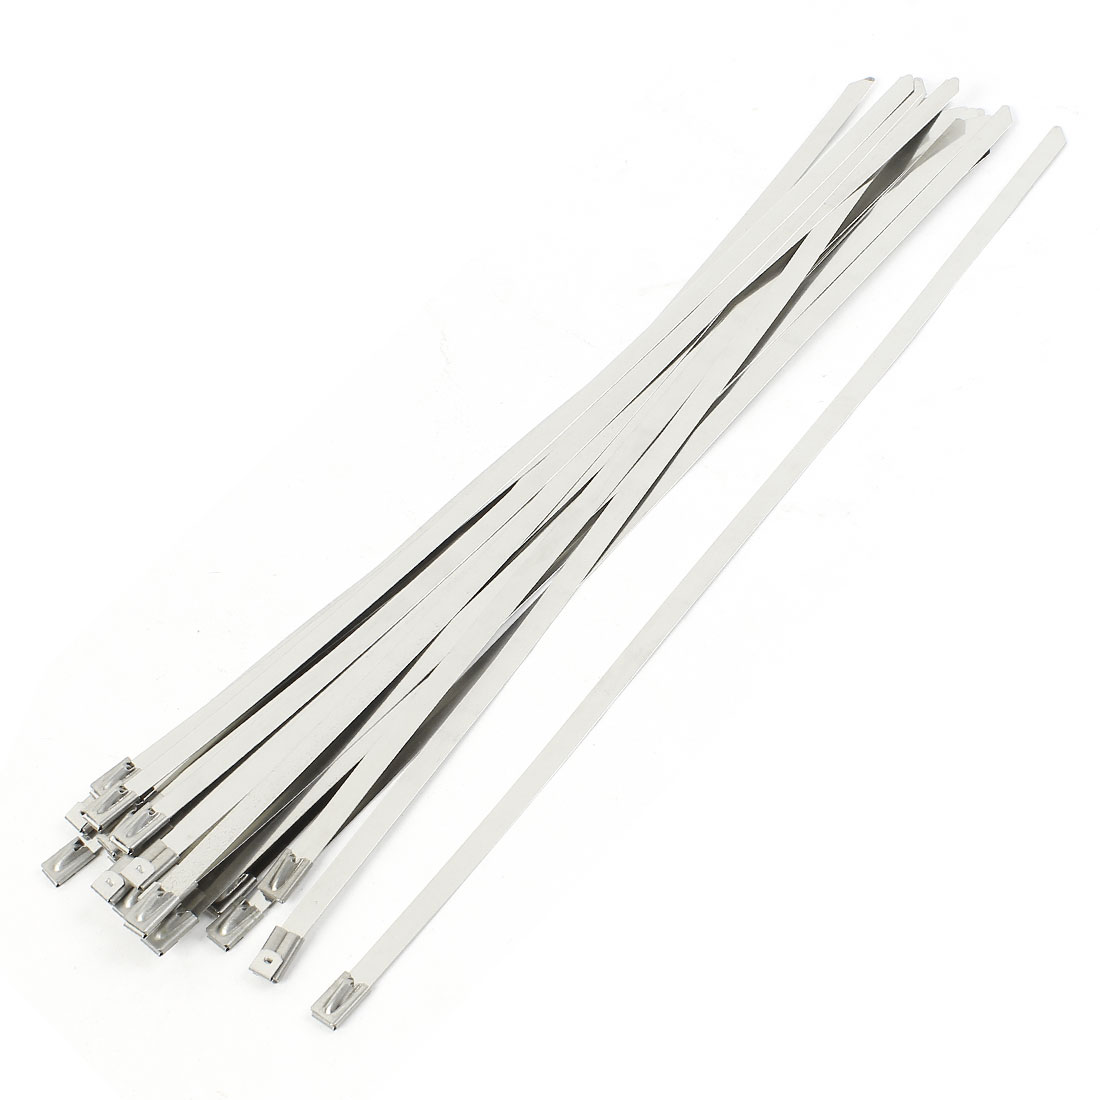 25Pcs Silver Tone Stainless Steel Coated Zip Tie 350x8mm for Pipe Hose Cable